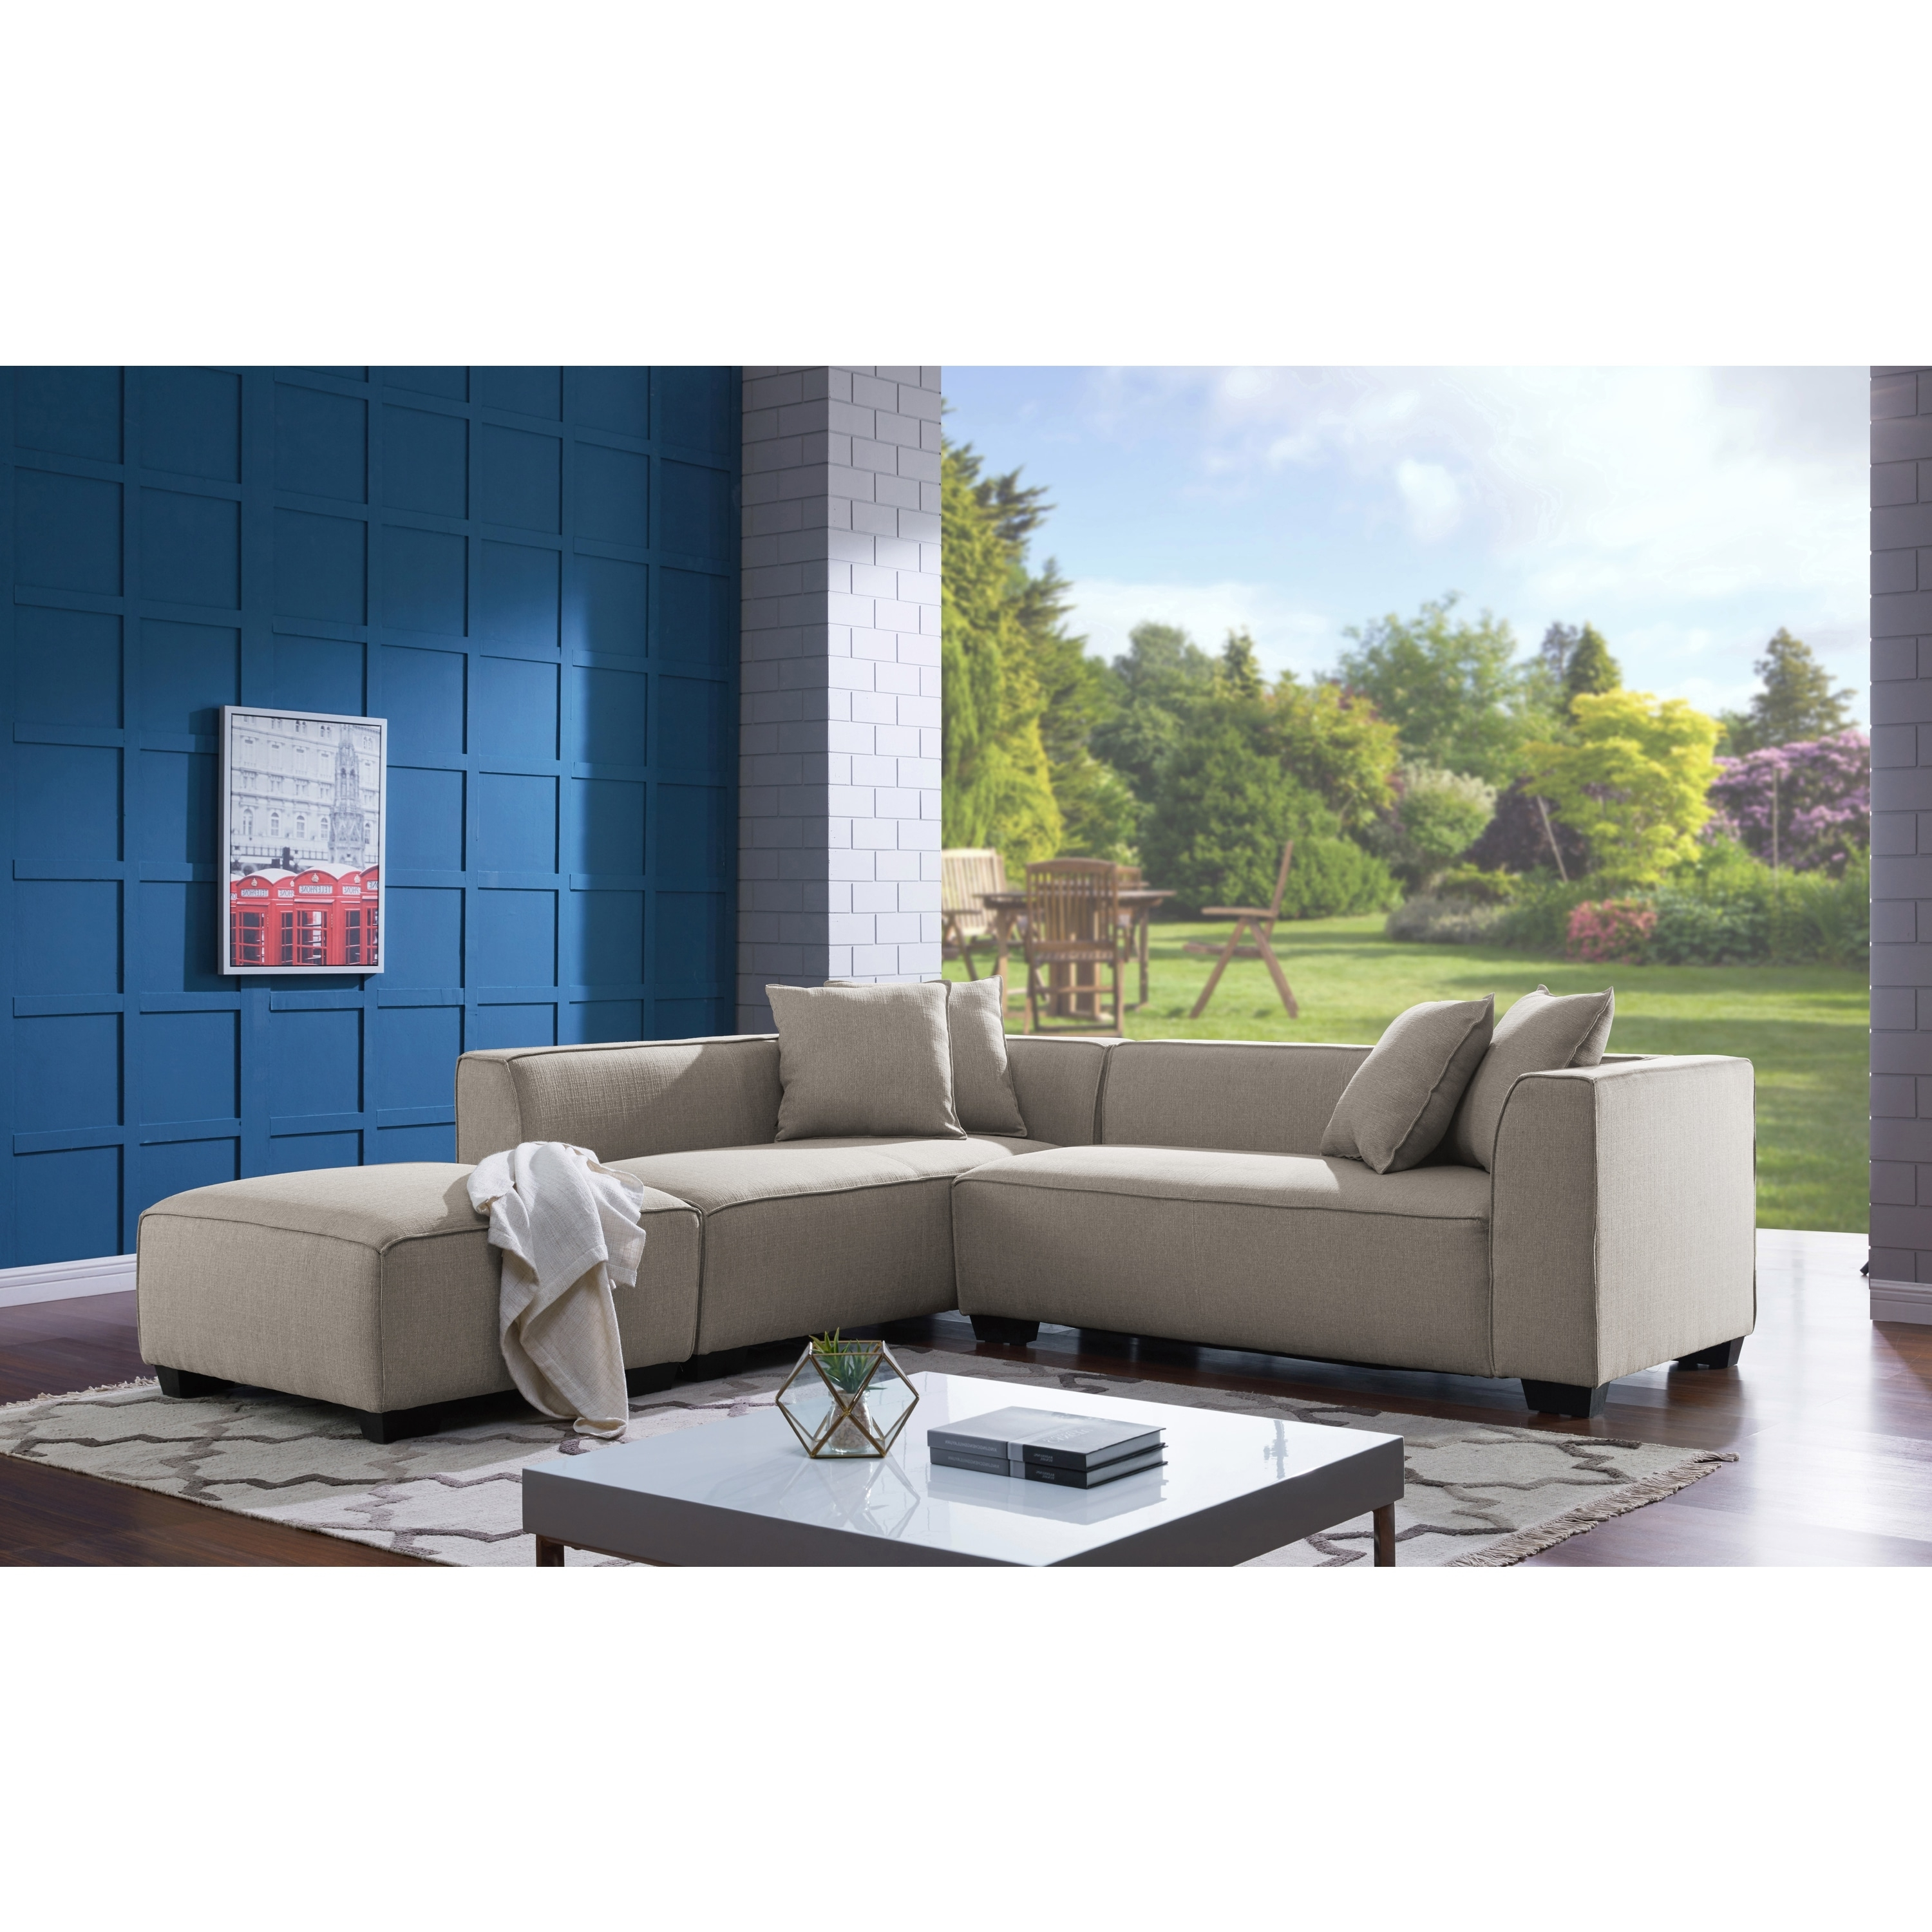 Famous Handy Living Phoenix Barley Tan Sectional Sofa With Ottoman – Free Within Phoenix Sectional Sofas (View 3 of 15)